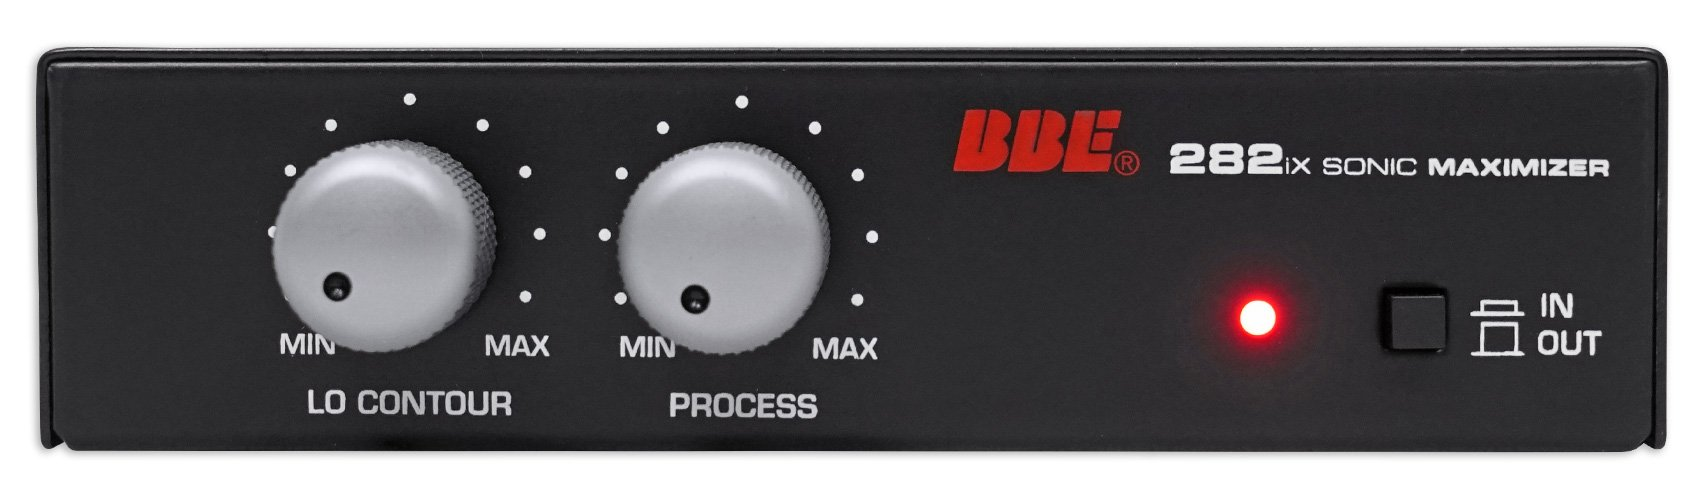 BBE 282iX Desktop Sonic Maximizer with Balanced 3-Pin XLR Connections by BBE (Image #1)